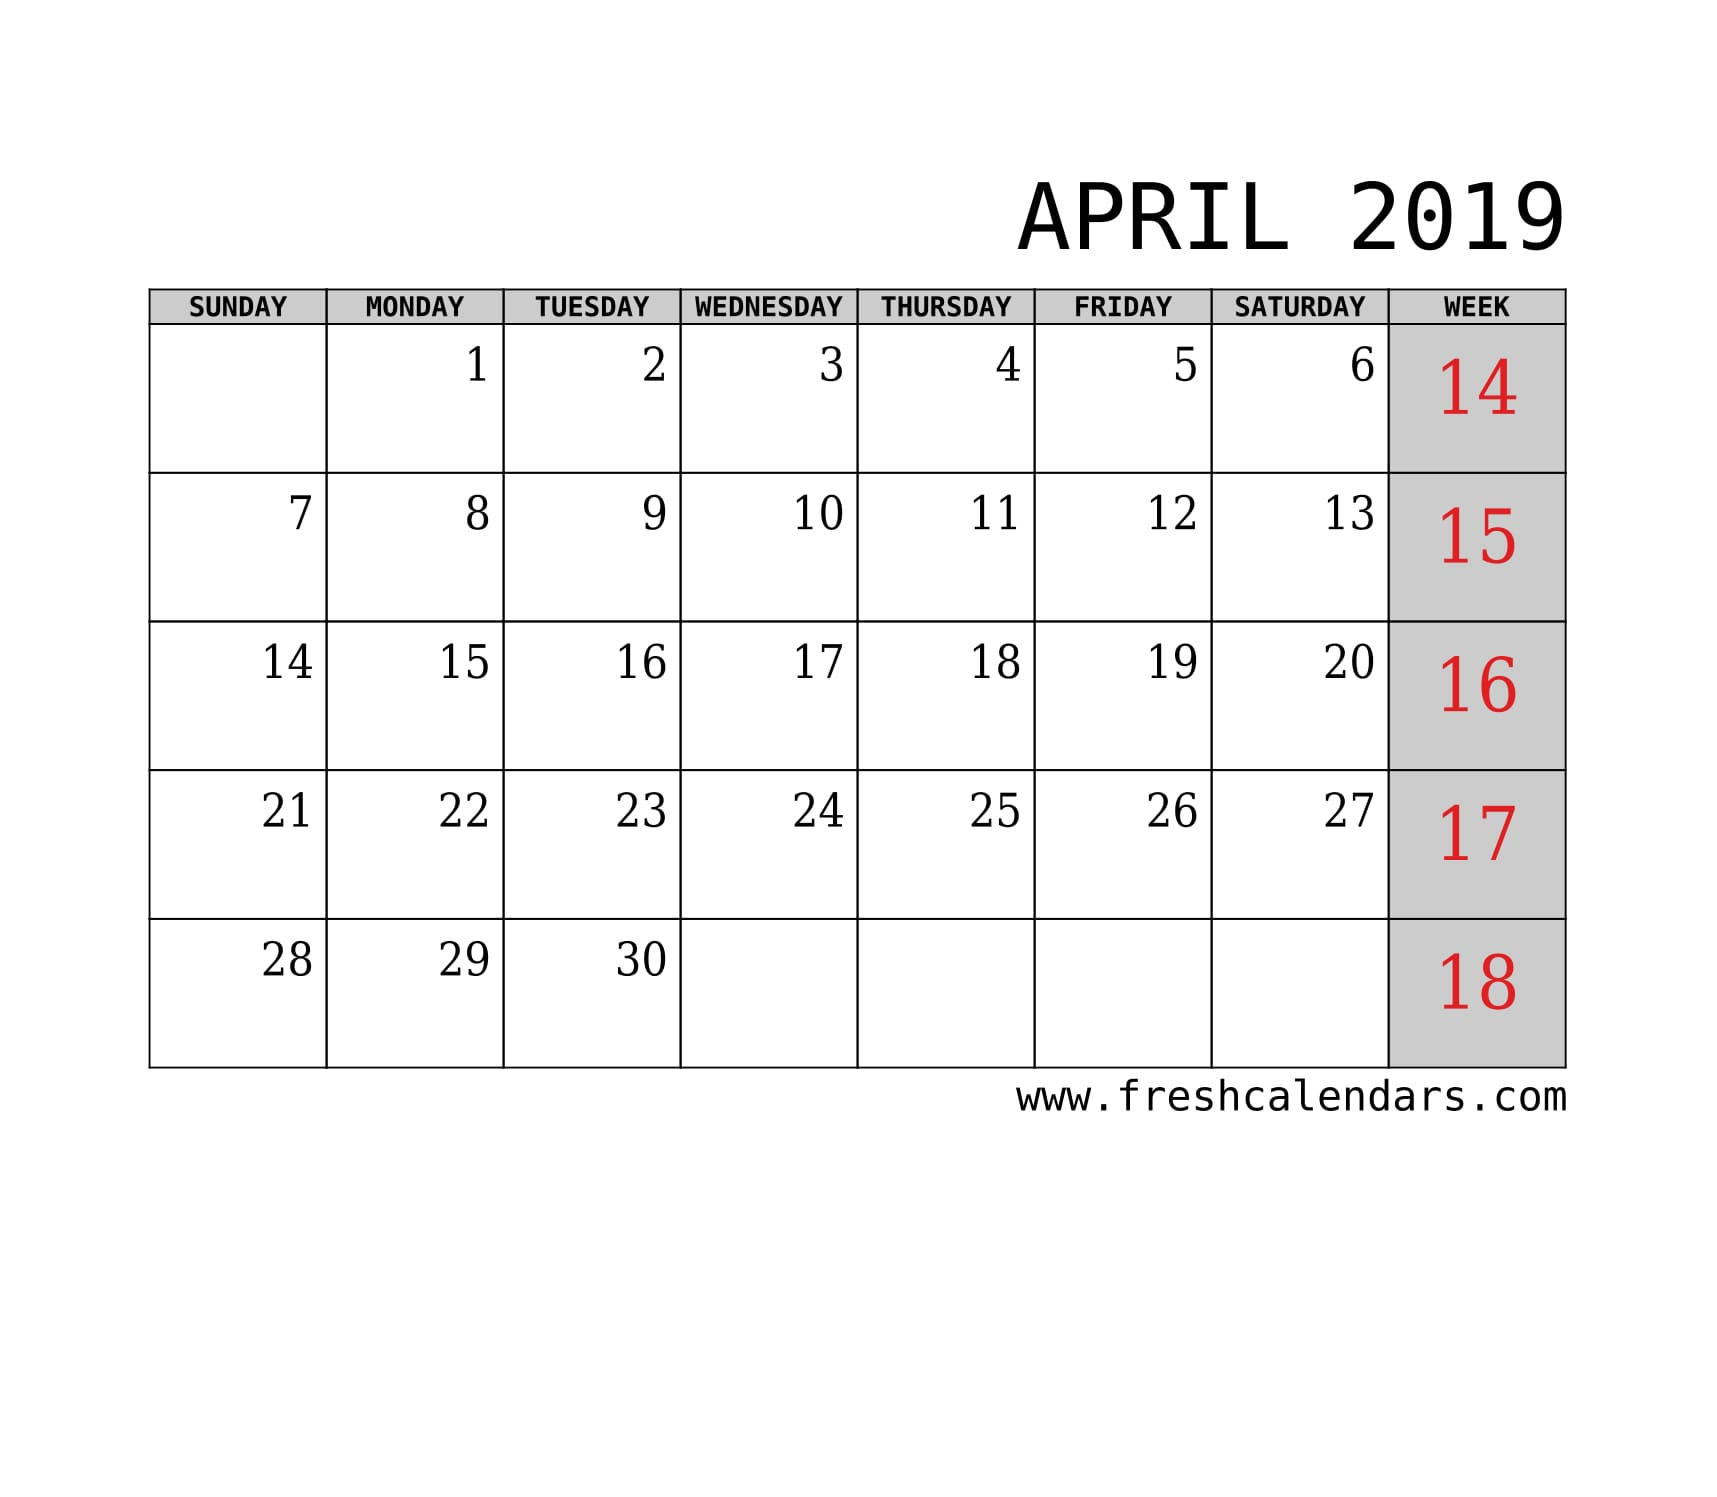 April 2019 Calendar With Week Template Printable